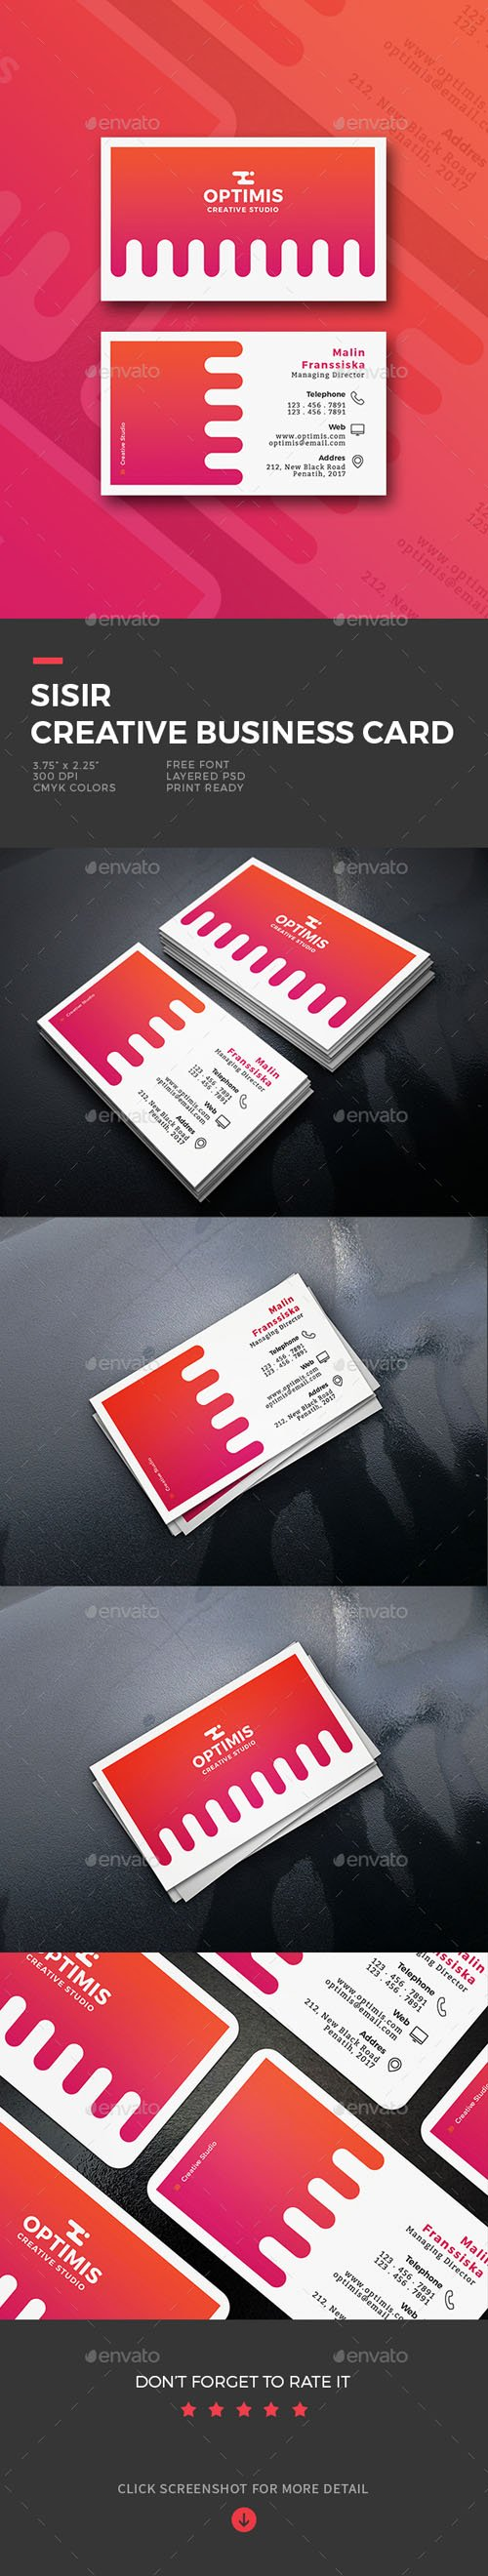 Sisir Creative Business Card 19661889